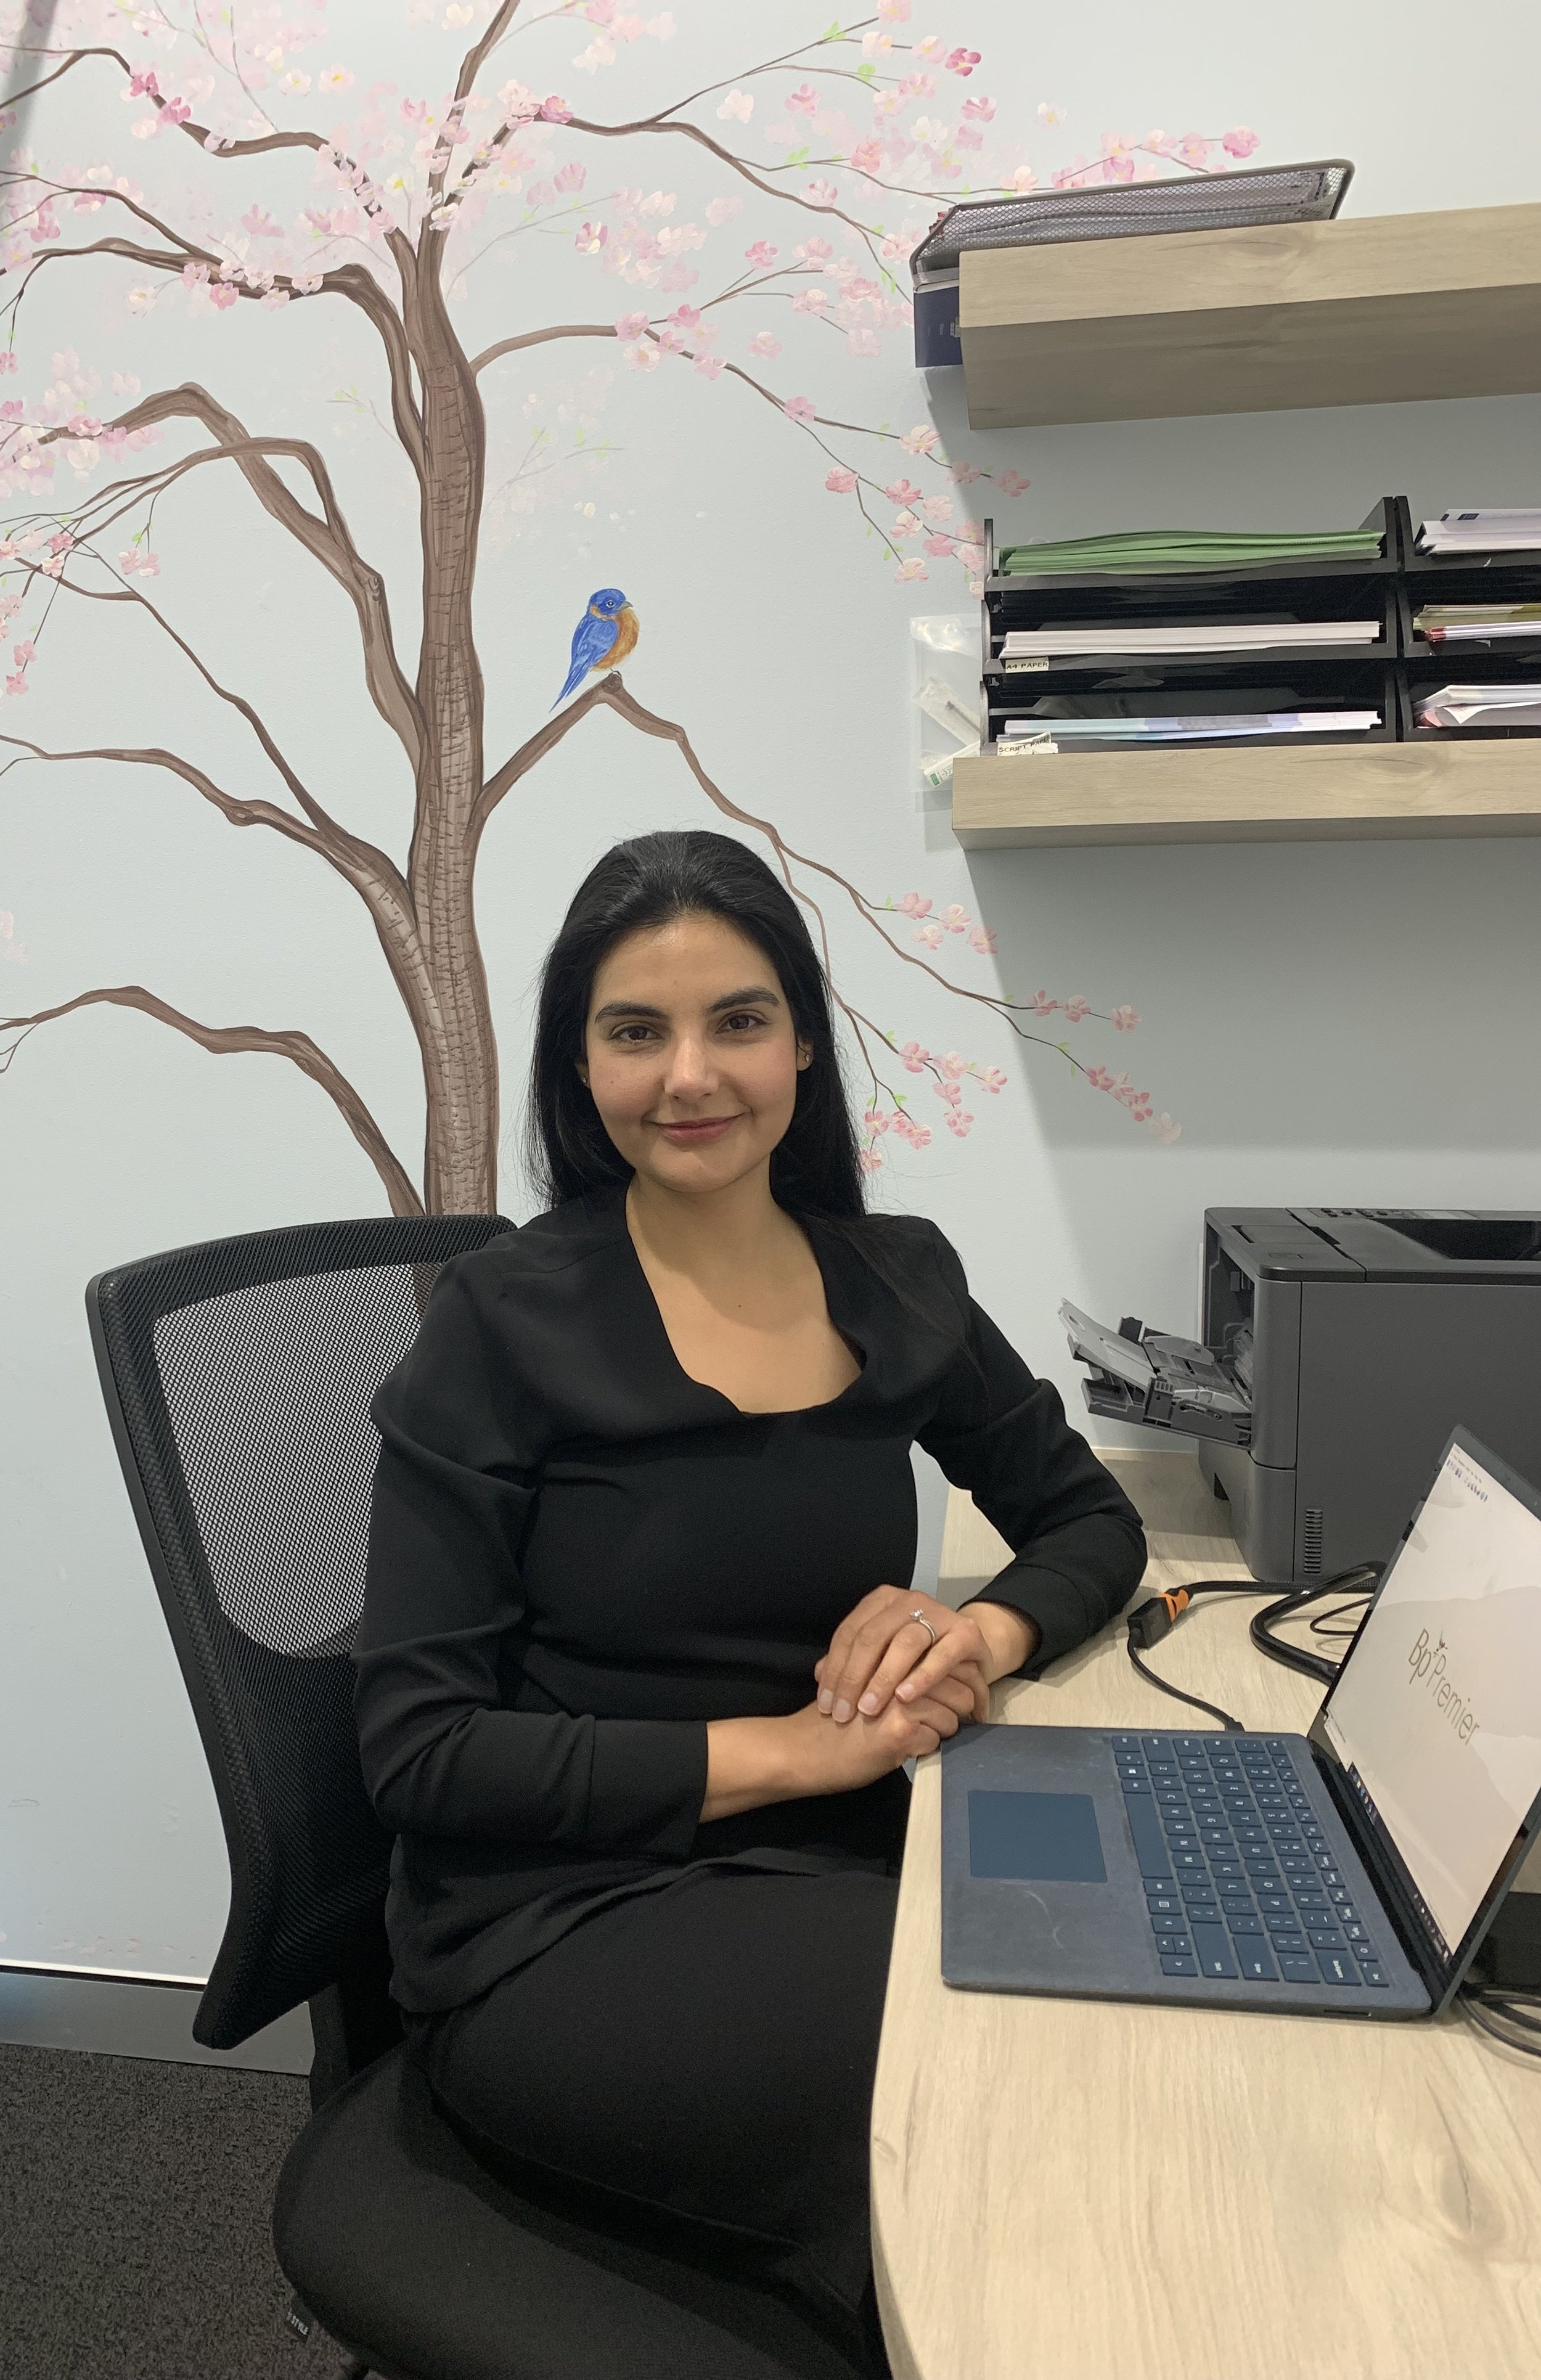 Dr Sarah Nakhel - B.Med Sc(Hons Syd) M.B.B.S (Hons Syd)F.R.A.C.G.P Diploma of Child Health Family Planning Australia CertificateSarah graduated from the University of Sydney with an honours degree in Medicine & Surgery prior to which she completed an honours degree in Medical Science with a Pharmacology major earning her the University Medal. As a junior doctor, she trained at several hospitals including Westmead Hospital and the Childrens Hospital at Westmead and subsequently completed a Diploma in Child Health through the University of Sydney and the Childrens Hospital at Westmead and a Certificate in Sexual Health & Family Planning through Family Planning Australia.She joined us in 2011 as a general practice registrar and has continued with us since as a fully qualified General Practitioner. Sarah loves the complexity and challenges of general practice and is passionate about patient education and empowerment. Above all she values the therapeutic relationship she is privileged to share with her patients and the continuity of care that general practice allows. She is dedicated to educating our future doctors and is actively involved in training general practice registrars.Away from work Sarah loves spending time with her young family and believes being a parent helps bring a deeper dimension to her practice.